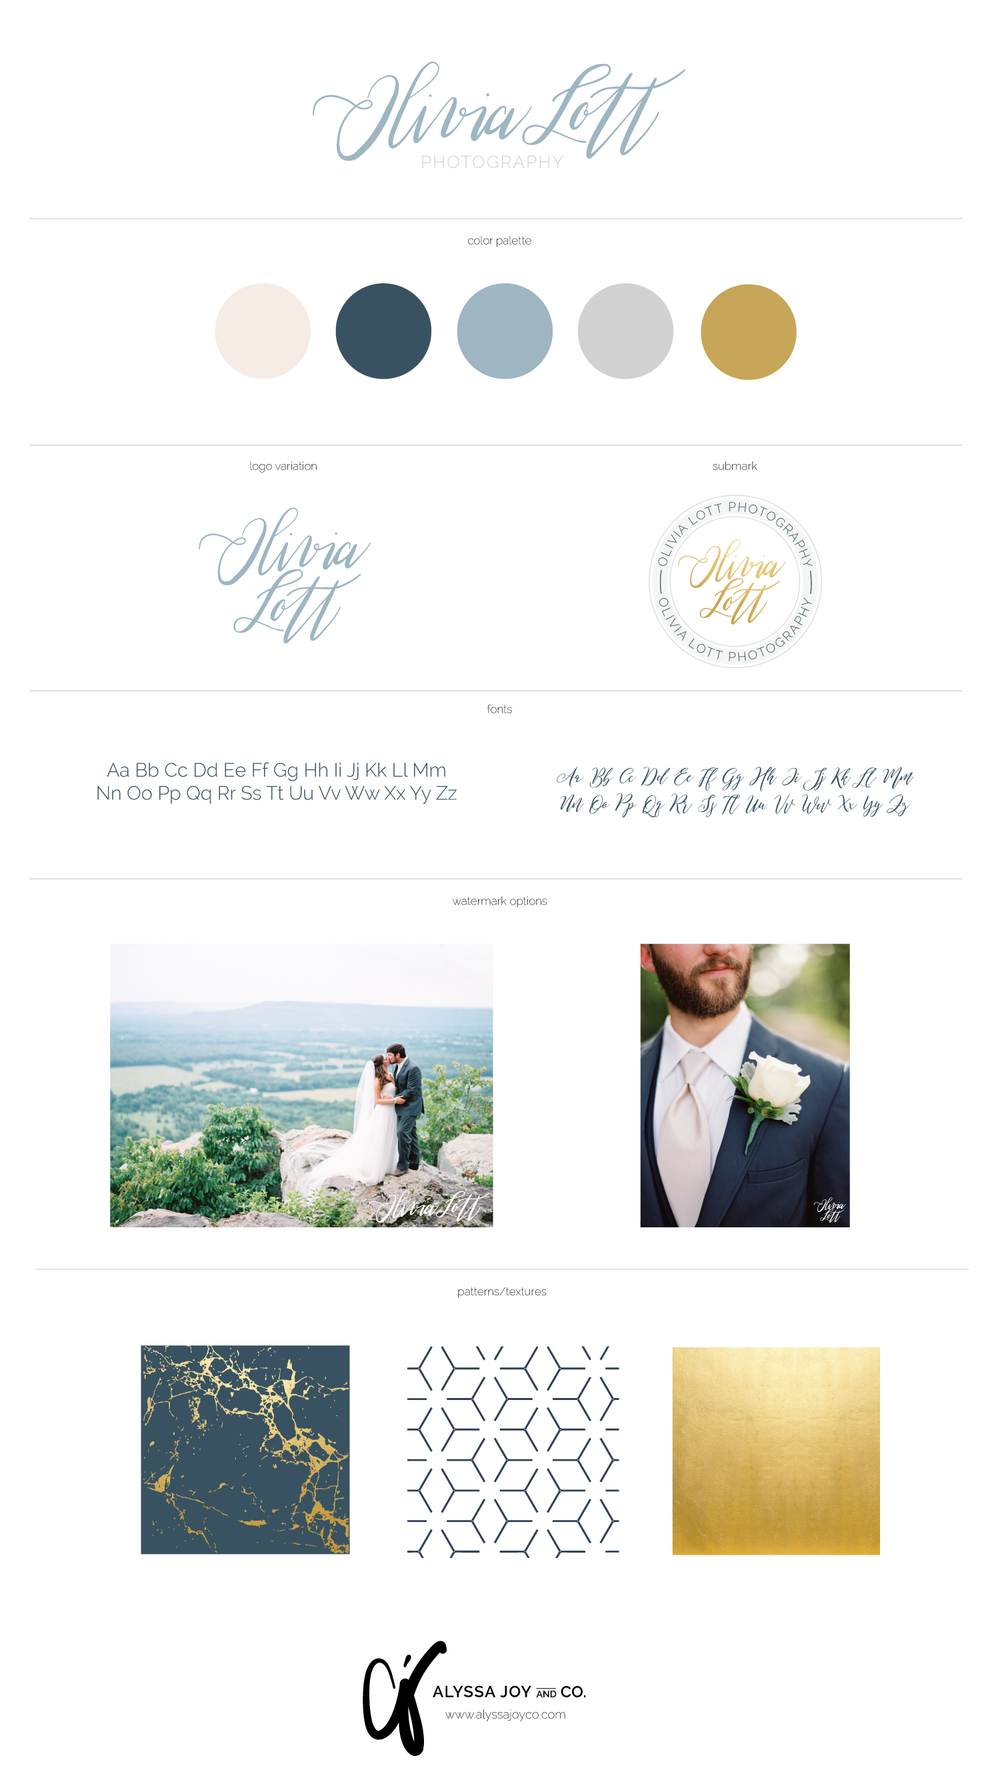 Alyssa Joy & Co. || Brand & Web Designer || Branding & Web Design for Olivia Lott Photography